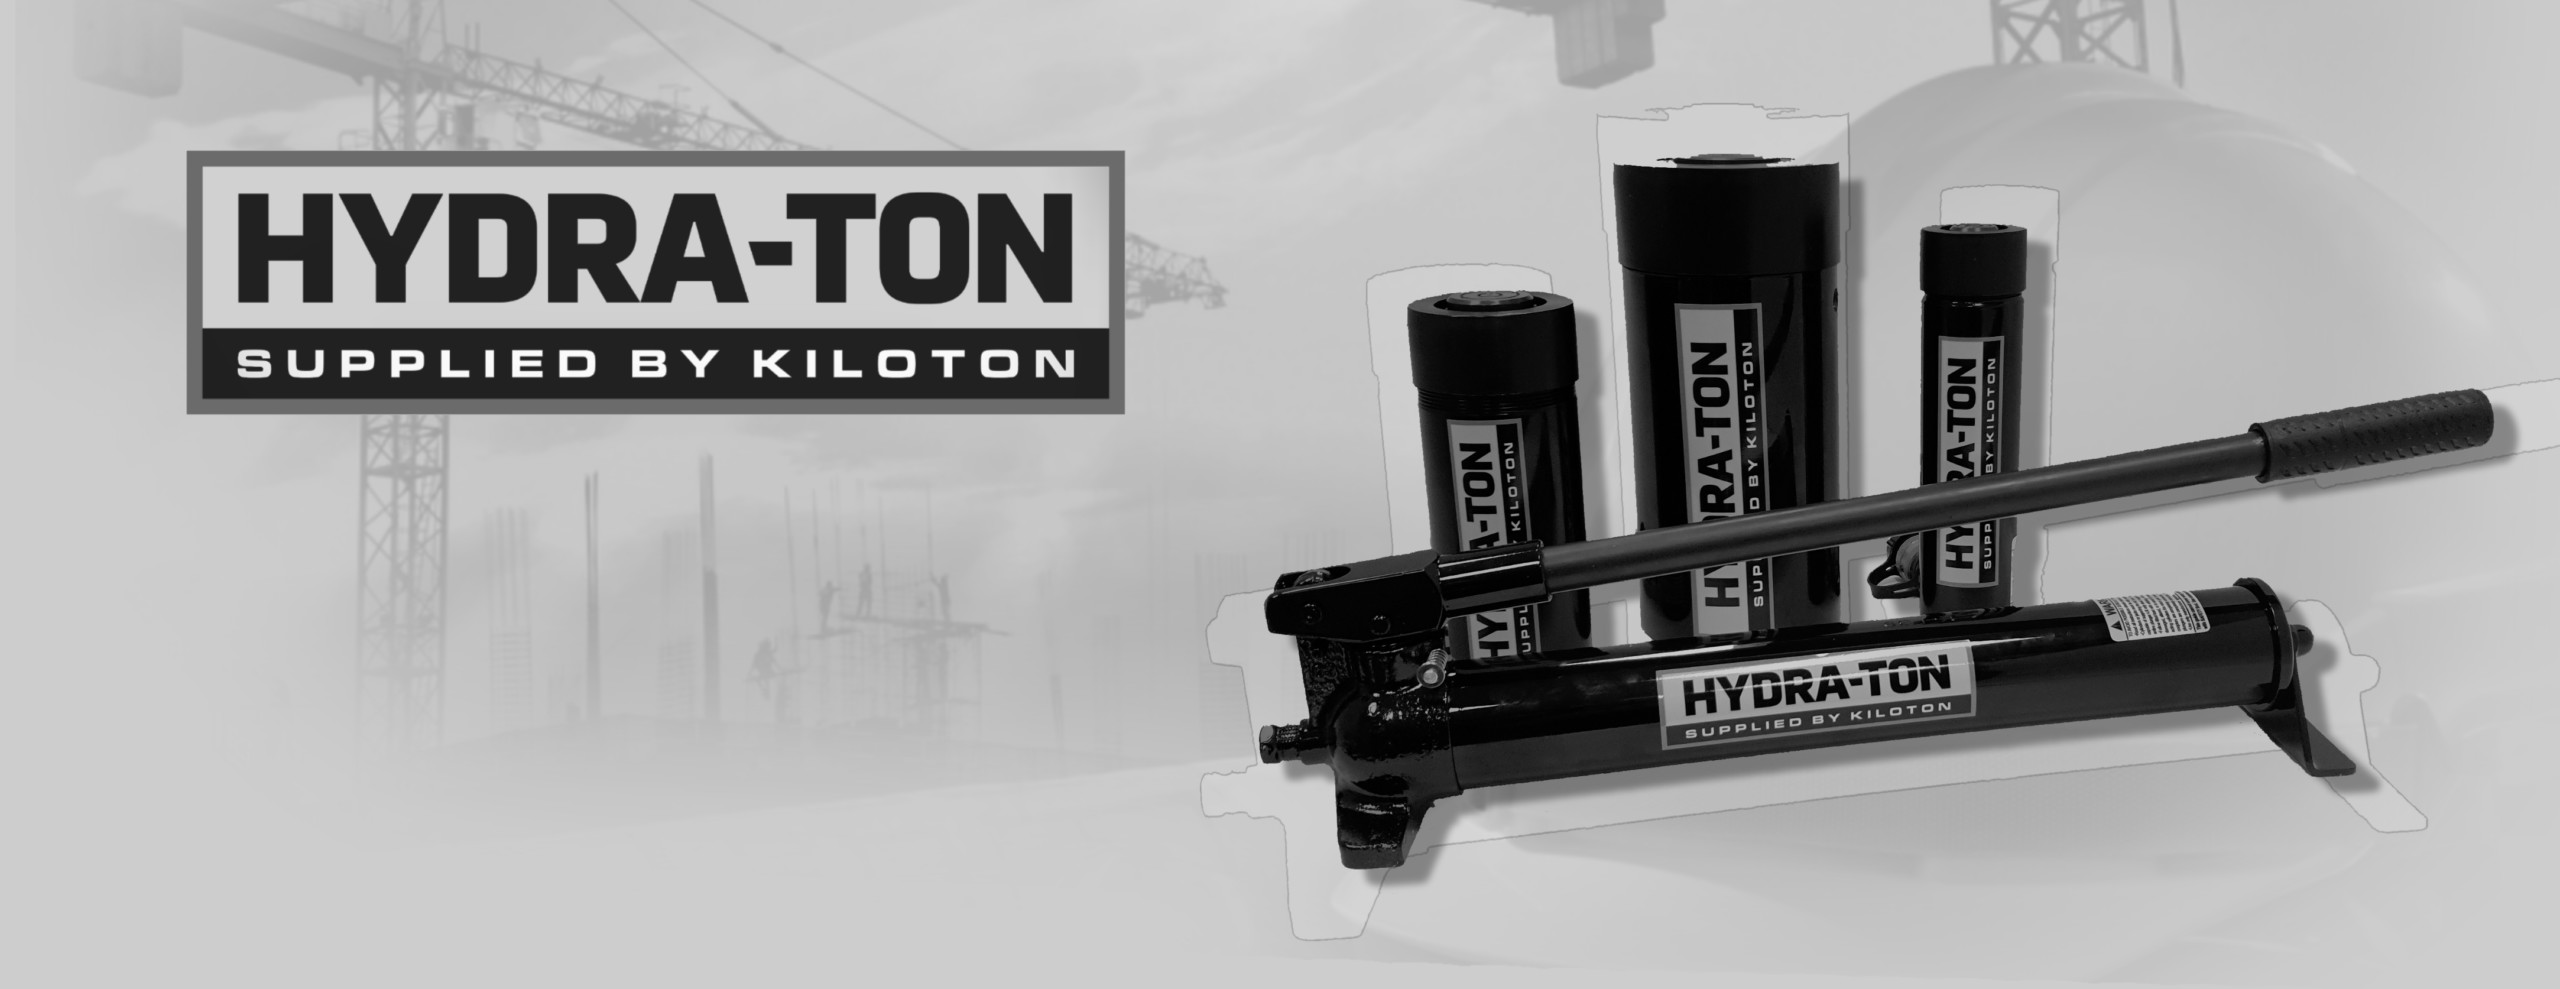 Hydra-Ton Black and White Website Image